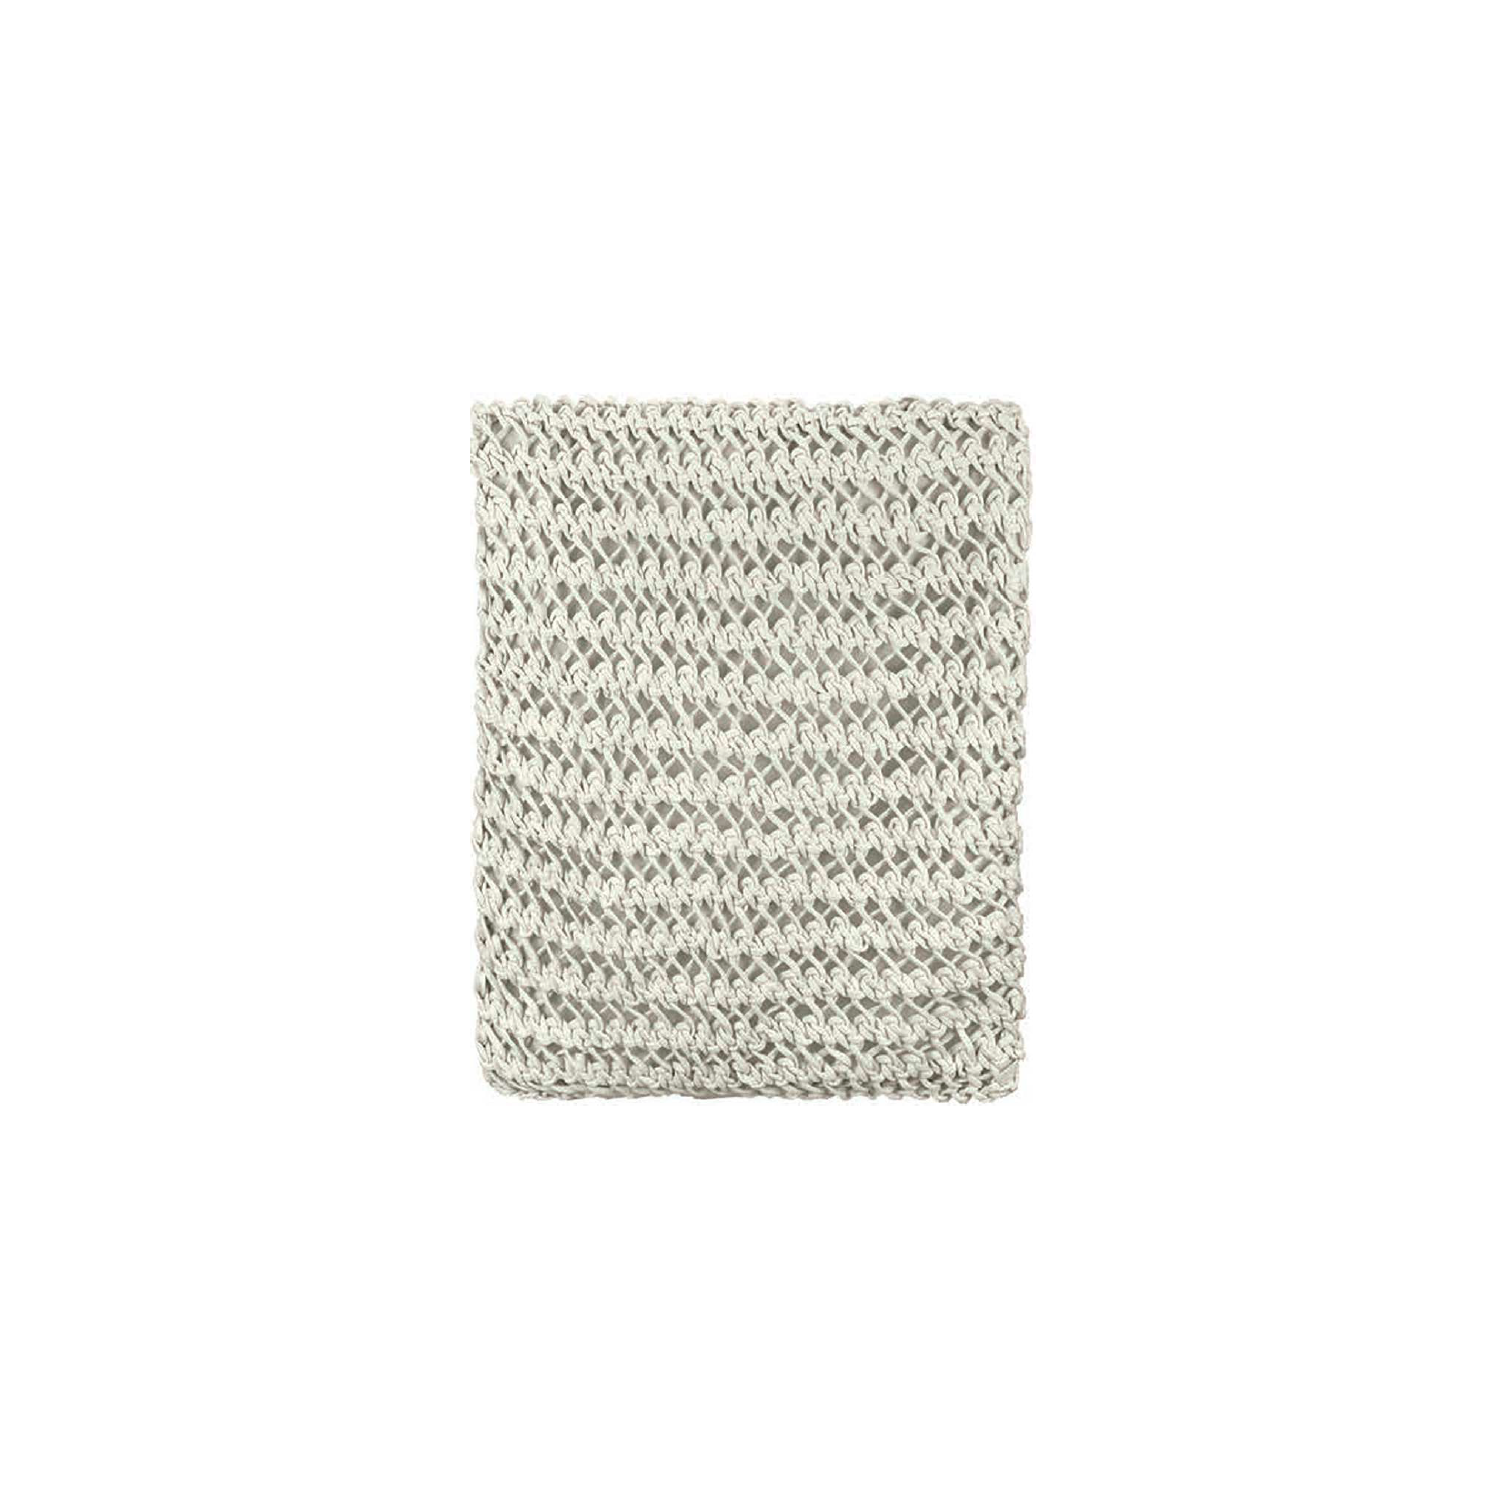 Gaia Knitted Cotton Throw - The Gaia Line is carefully knitted within a trained community of women that found in their craft a way to provide for their families, each one of these cushions and throws is unique.  Elisa Atheniense Home soft indoors collection is made with natural cotton fibres, eco-friendly, handwoven or elaborated using traditional hand-loom techniques. The use of organic materials brings softness and comfort to the space. This collection combines their mission for responsible sourcing and manufacturing.  Please enquire for more information and see colour chart for reference.   | Matter of Stuff